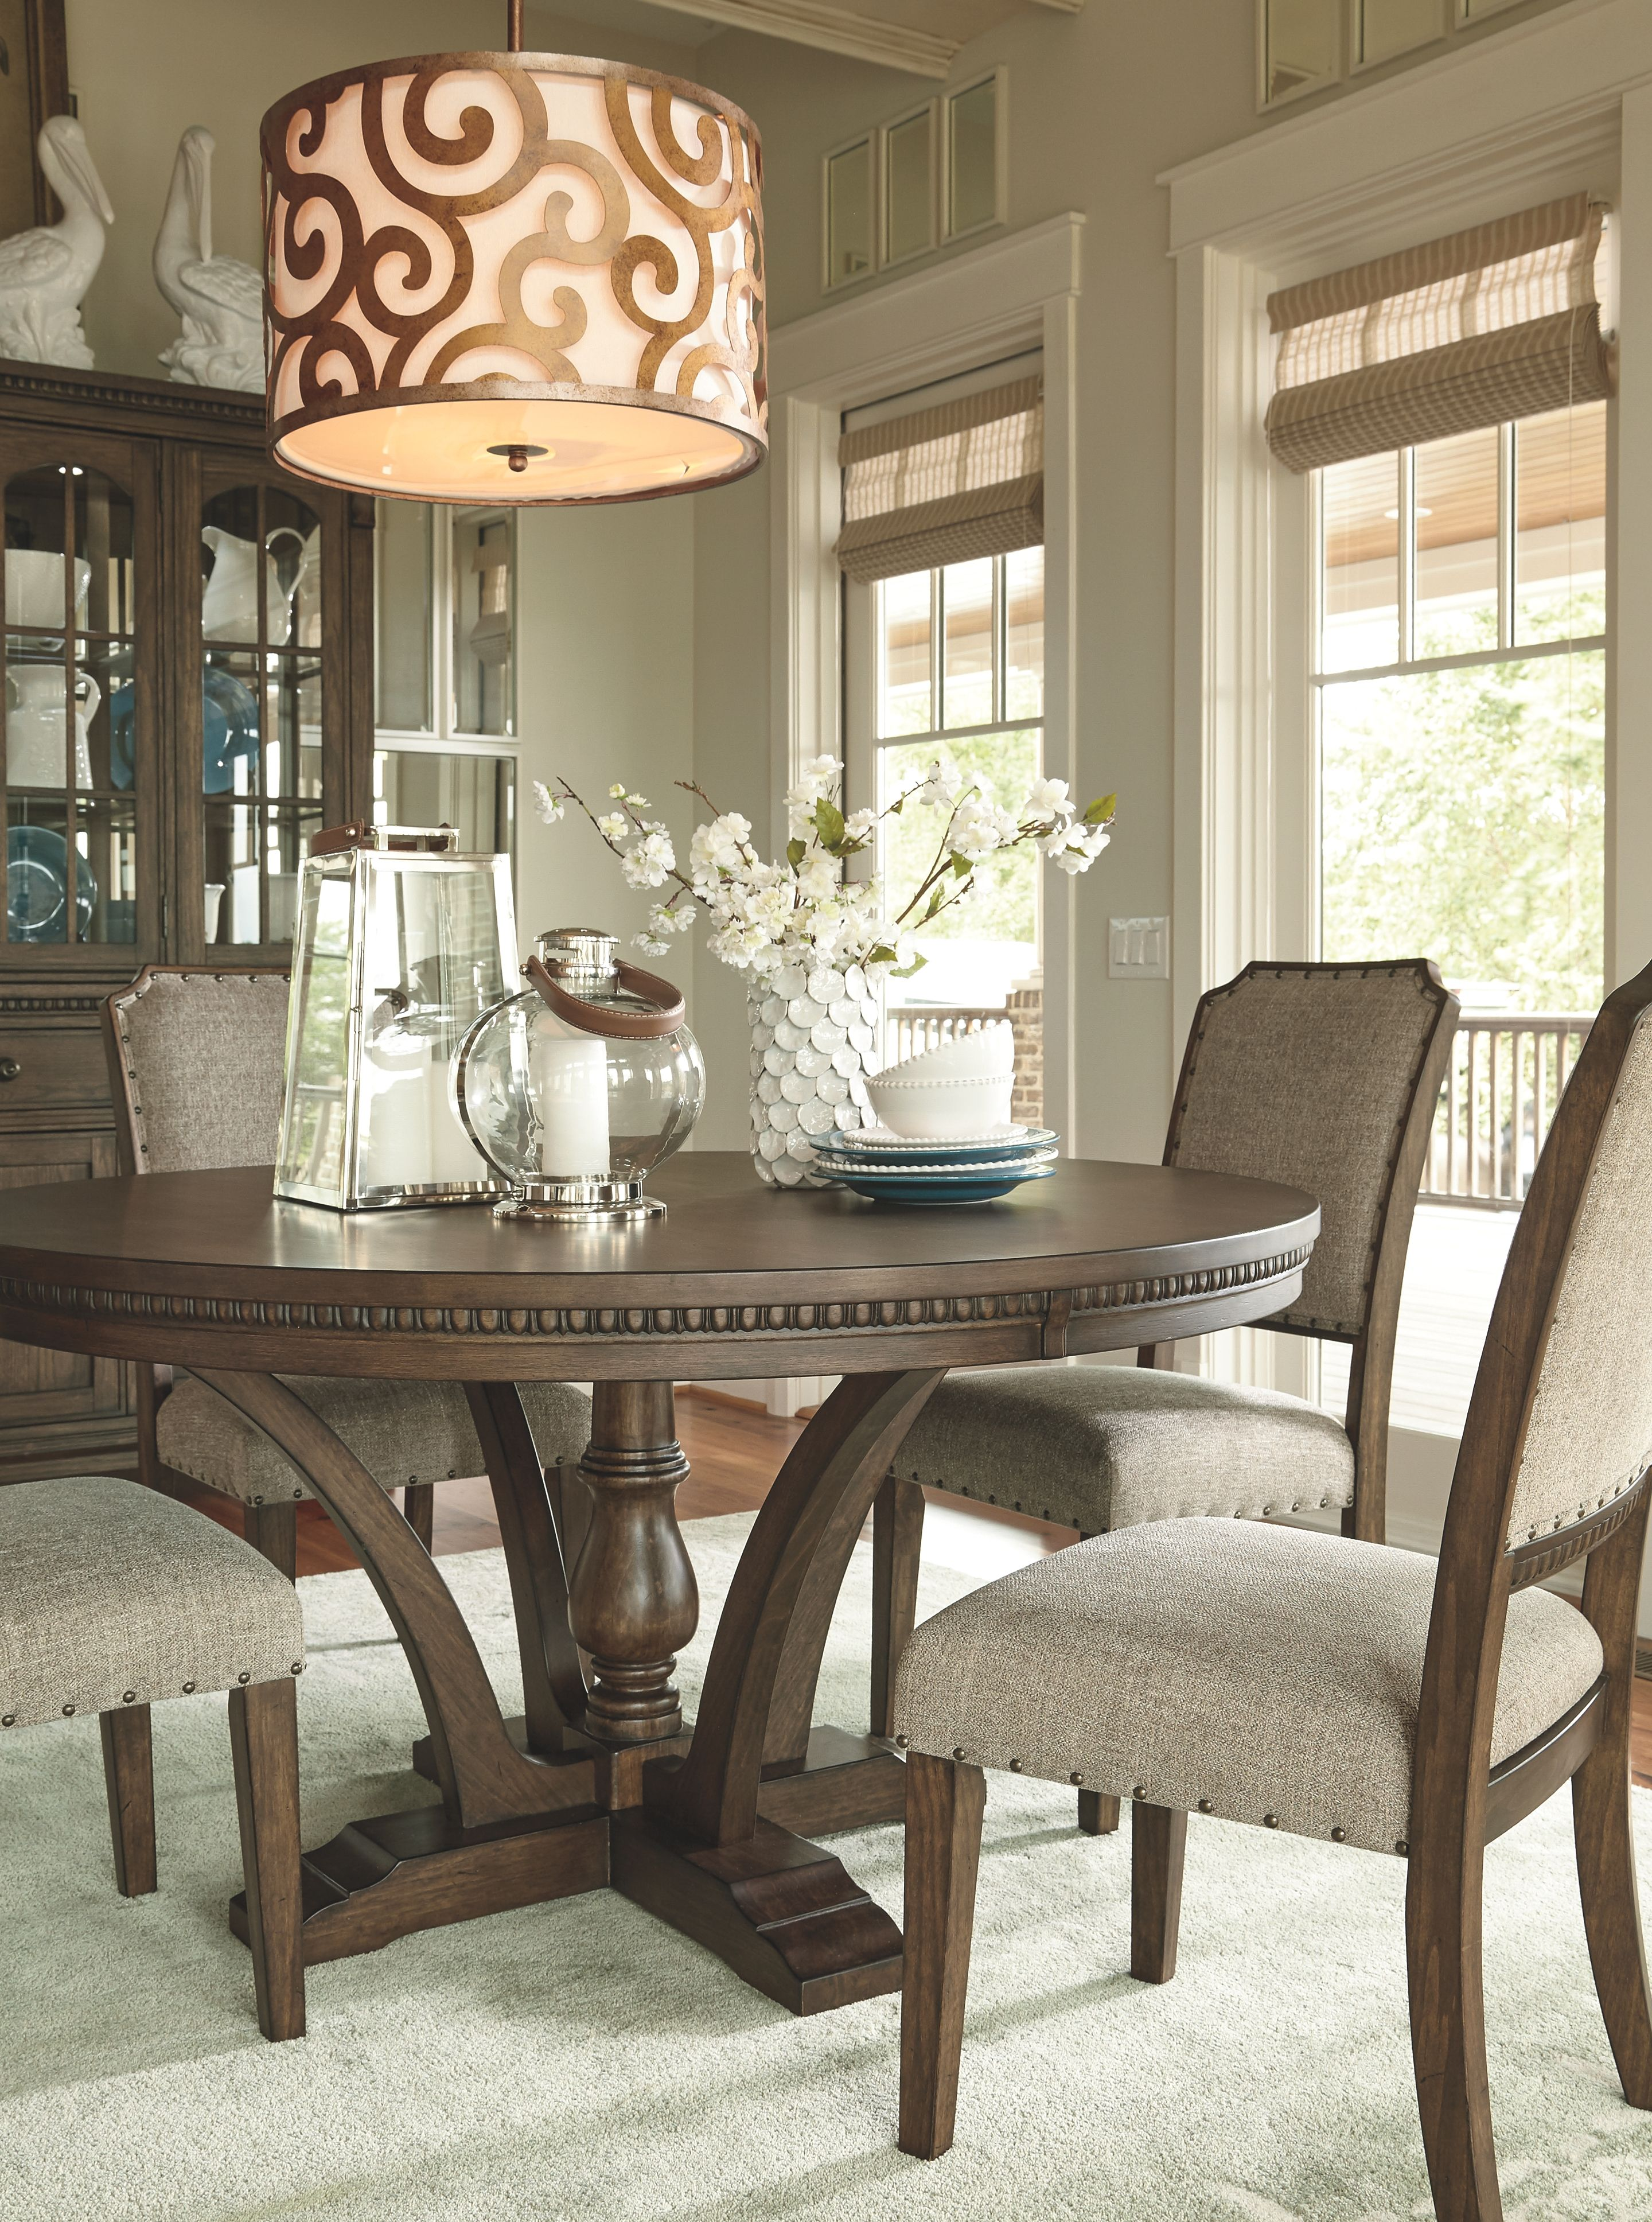 Larrenton Table And Base Round Dining Room Table Dining Room Decor Dining Room Cozy